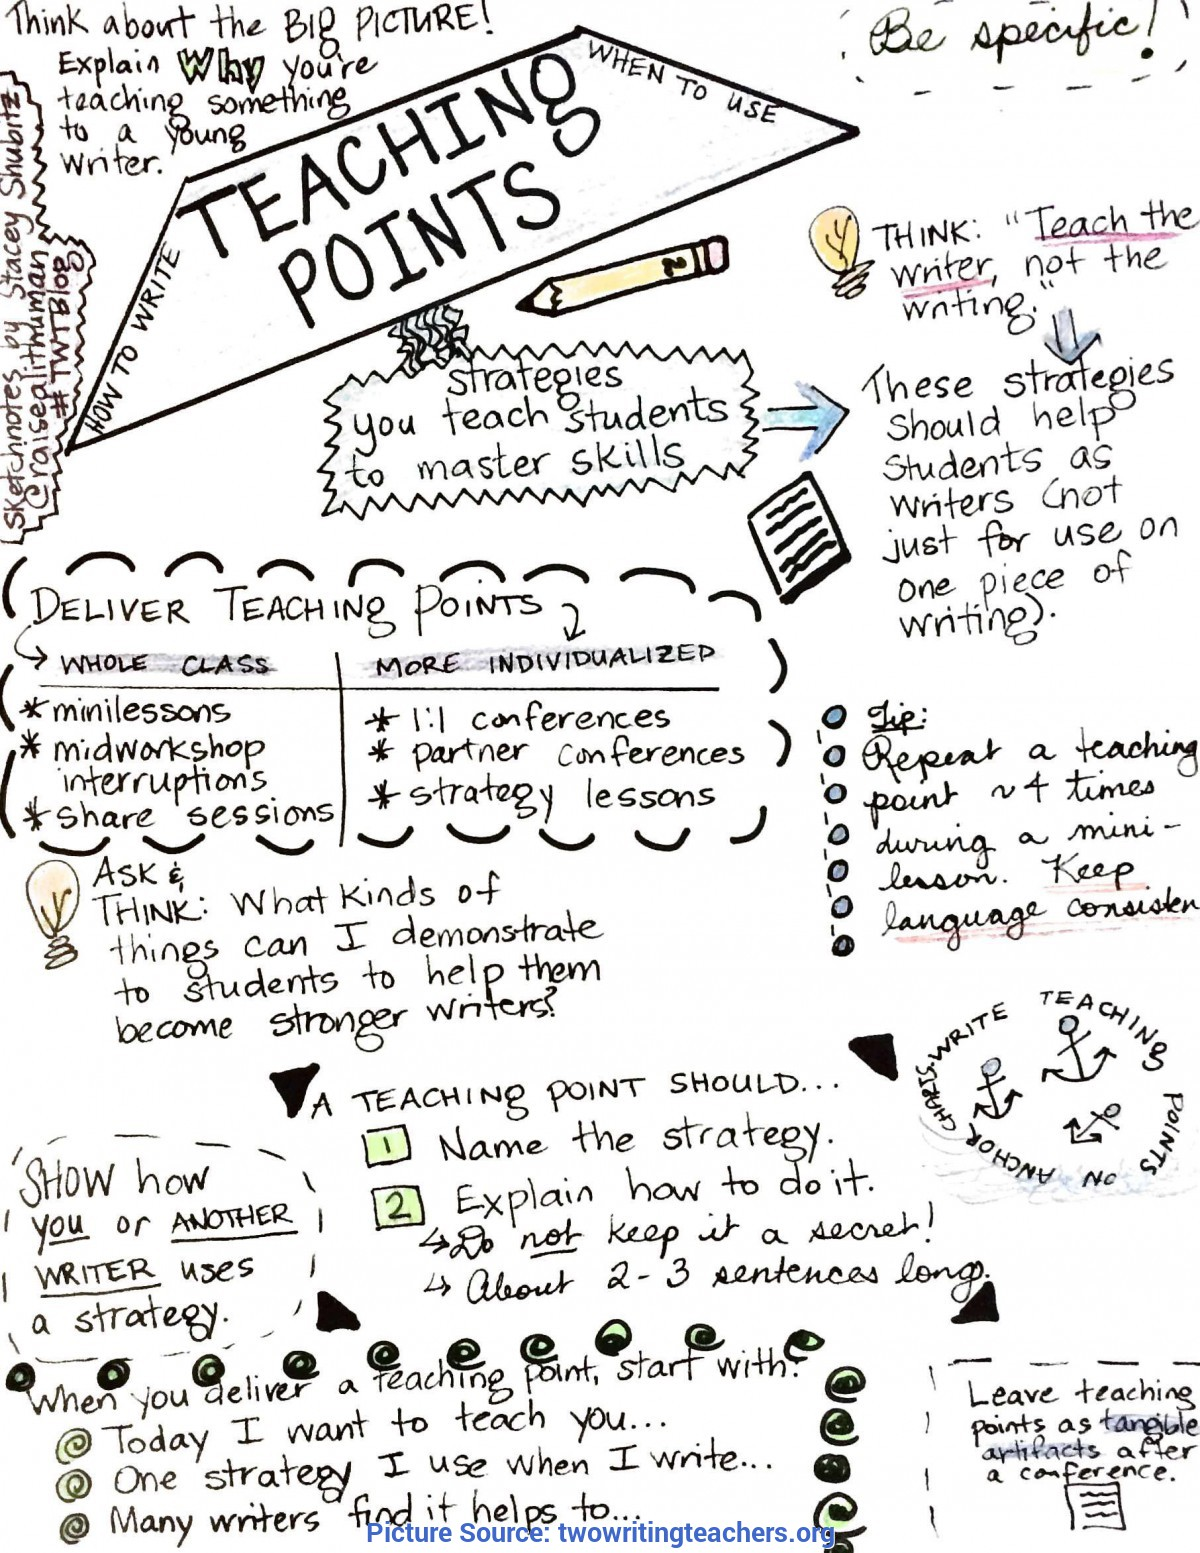 Valuable Teaching Points In Lesson Plan Quick Tips For Writing Teaching Points | Two Writing Teac